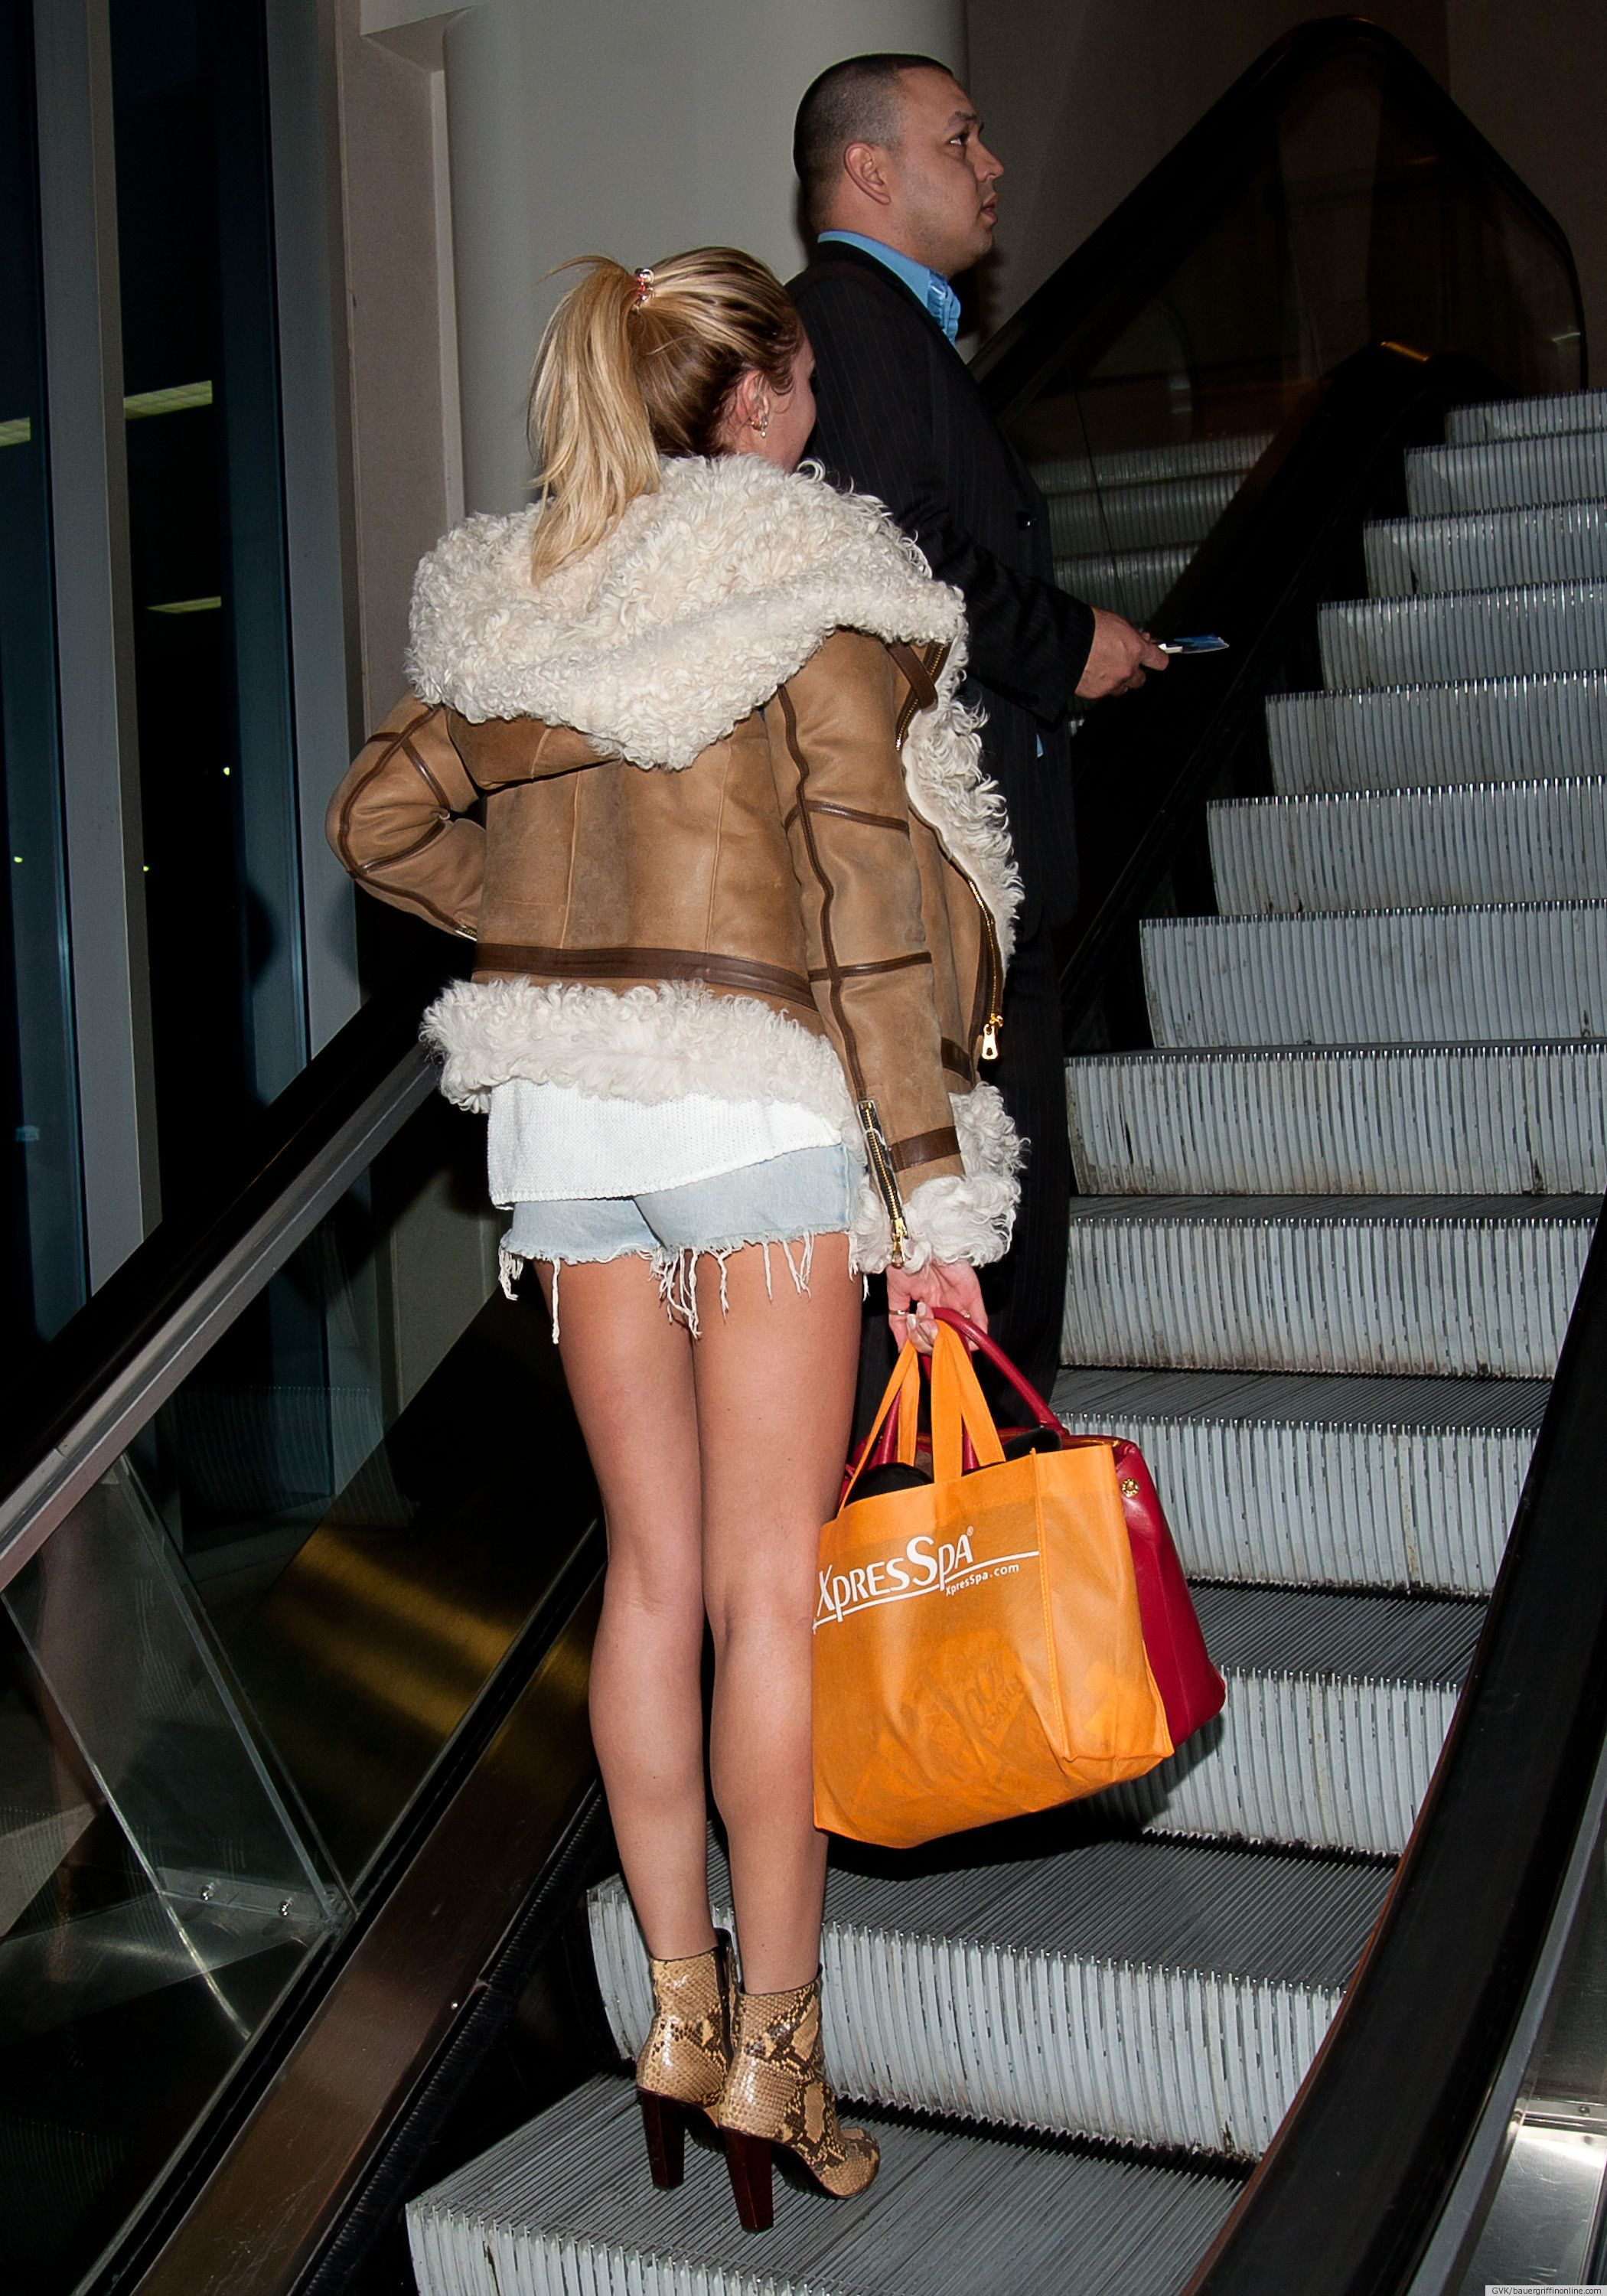 Now thats how ladies should dress in the airport...